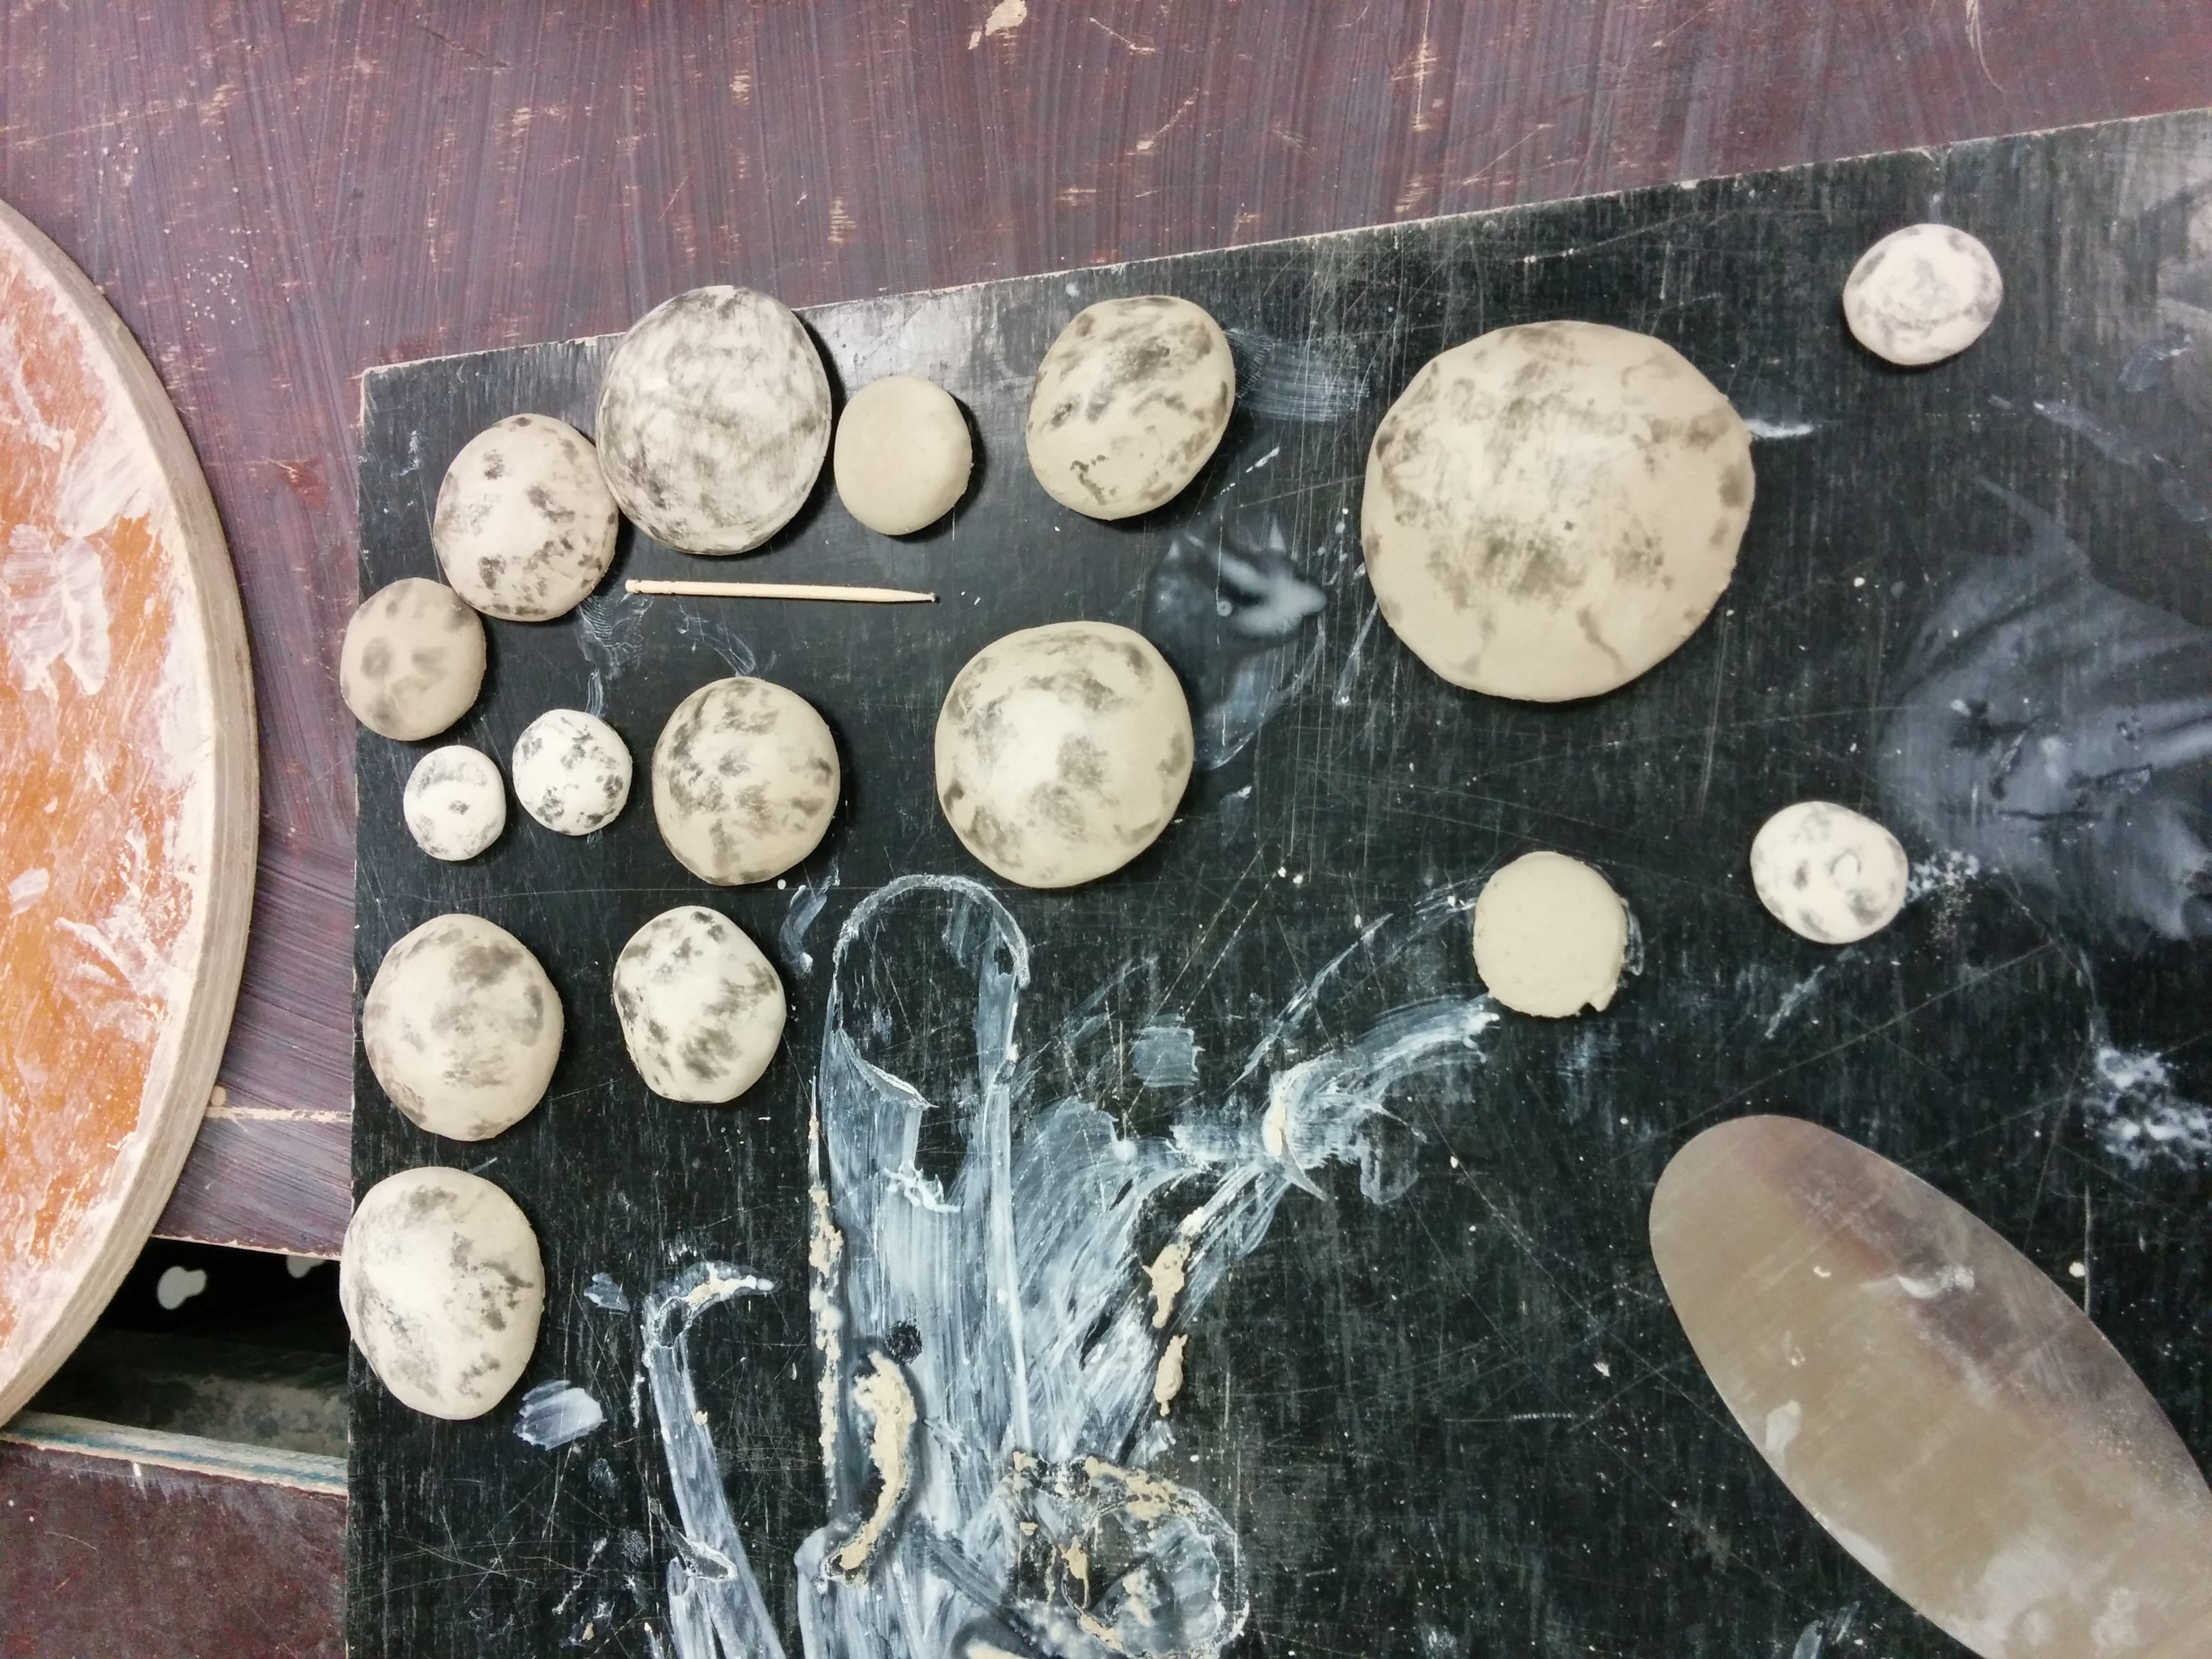 The original handformed clay pieces I used to create the moulds.